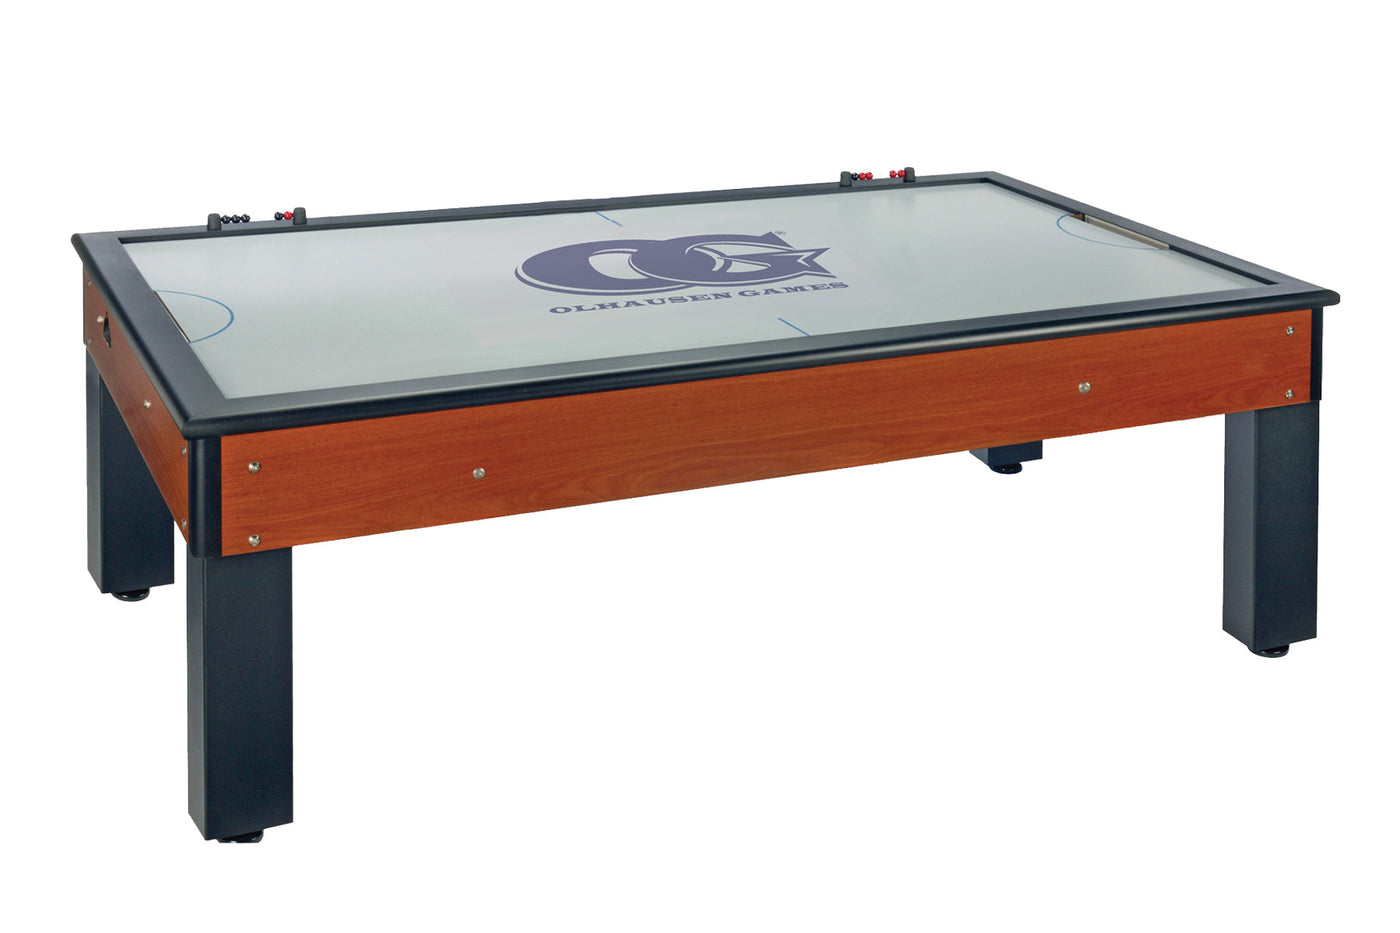 Incroyable Olhausen Commercial Air Hockey Table